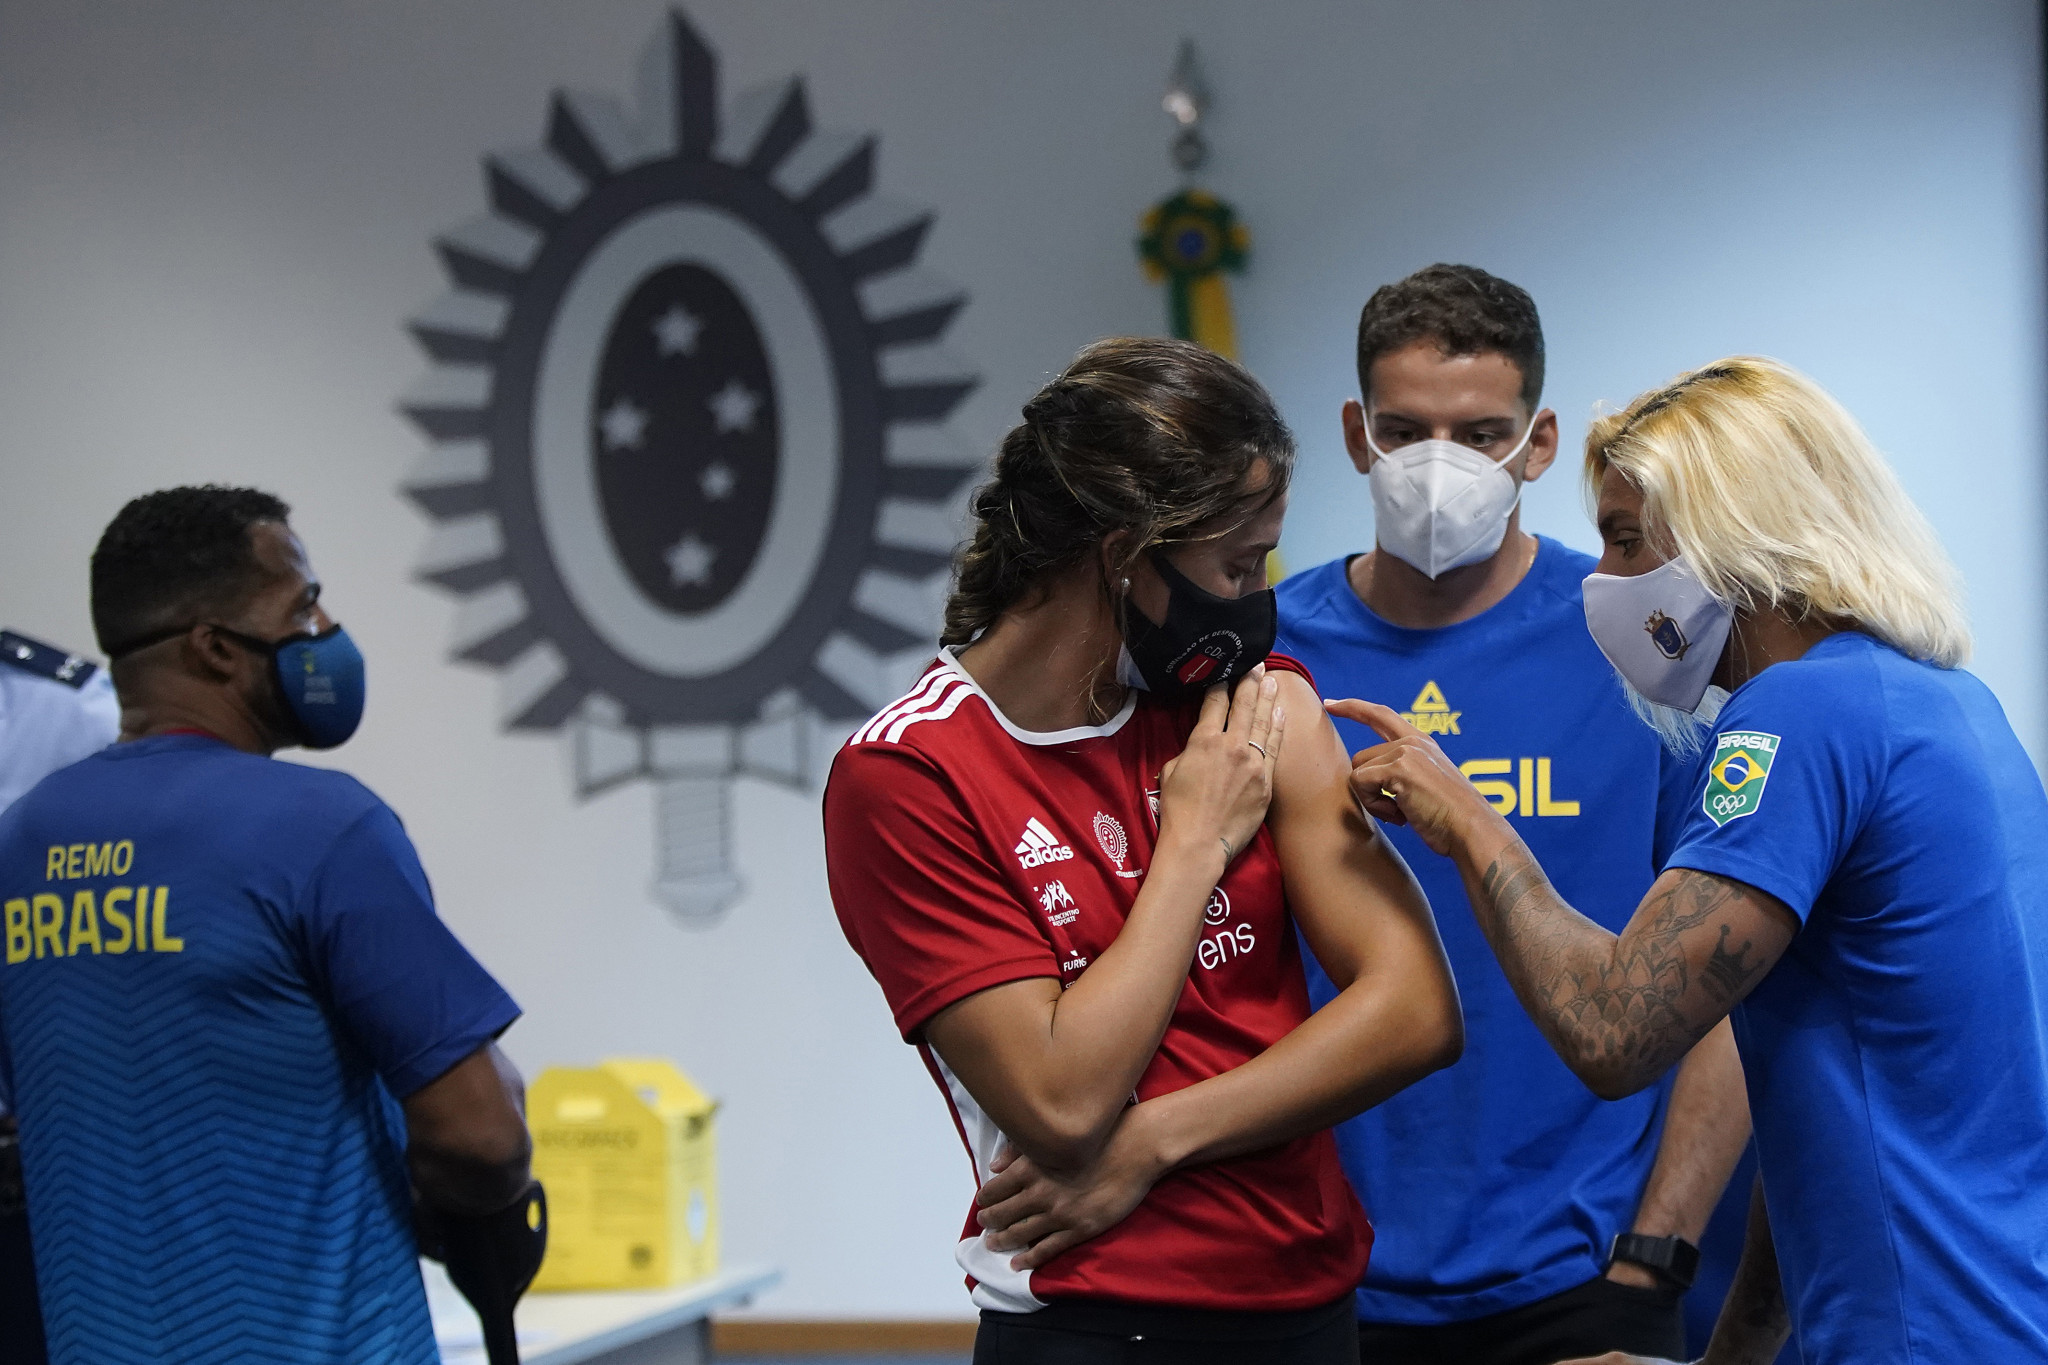 Foreign athletes were offered the opportunity of receiving COVID-19 vaccines before this year's Olympic Games in Tokyo under a programme run by the IOC in association with Pfizer ©Getty Images